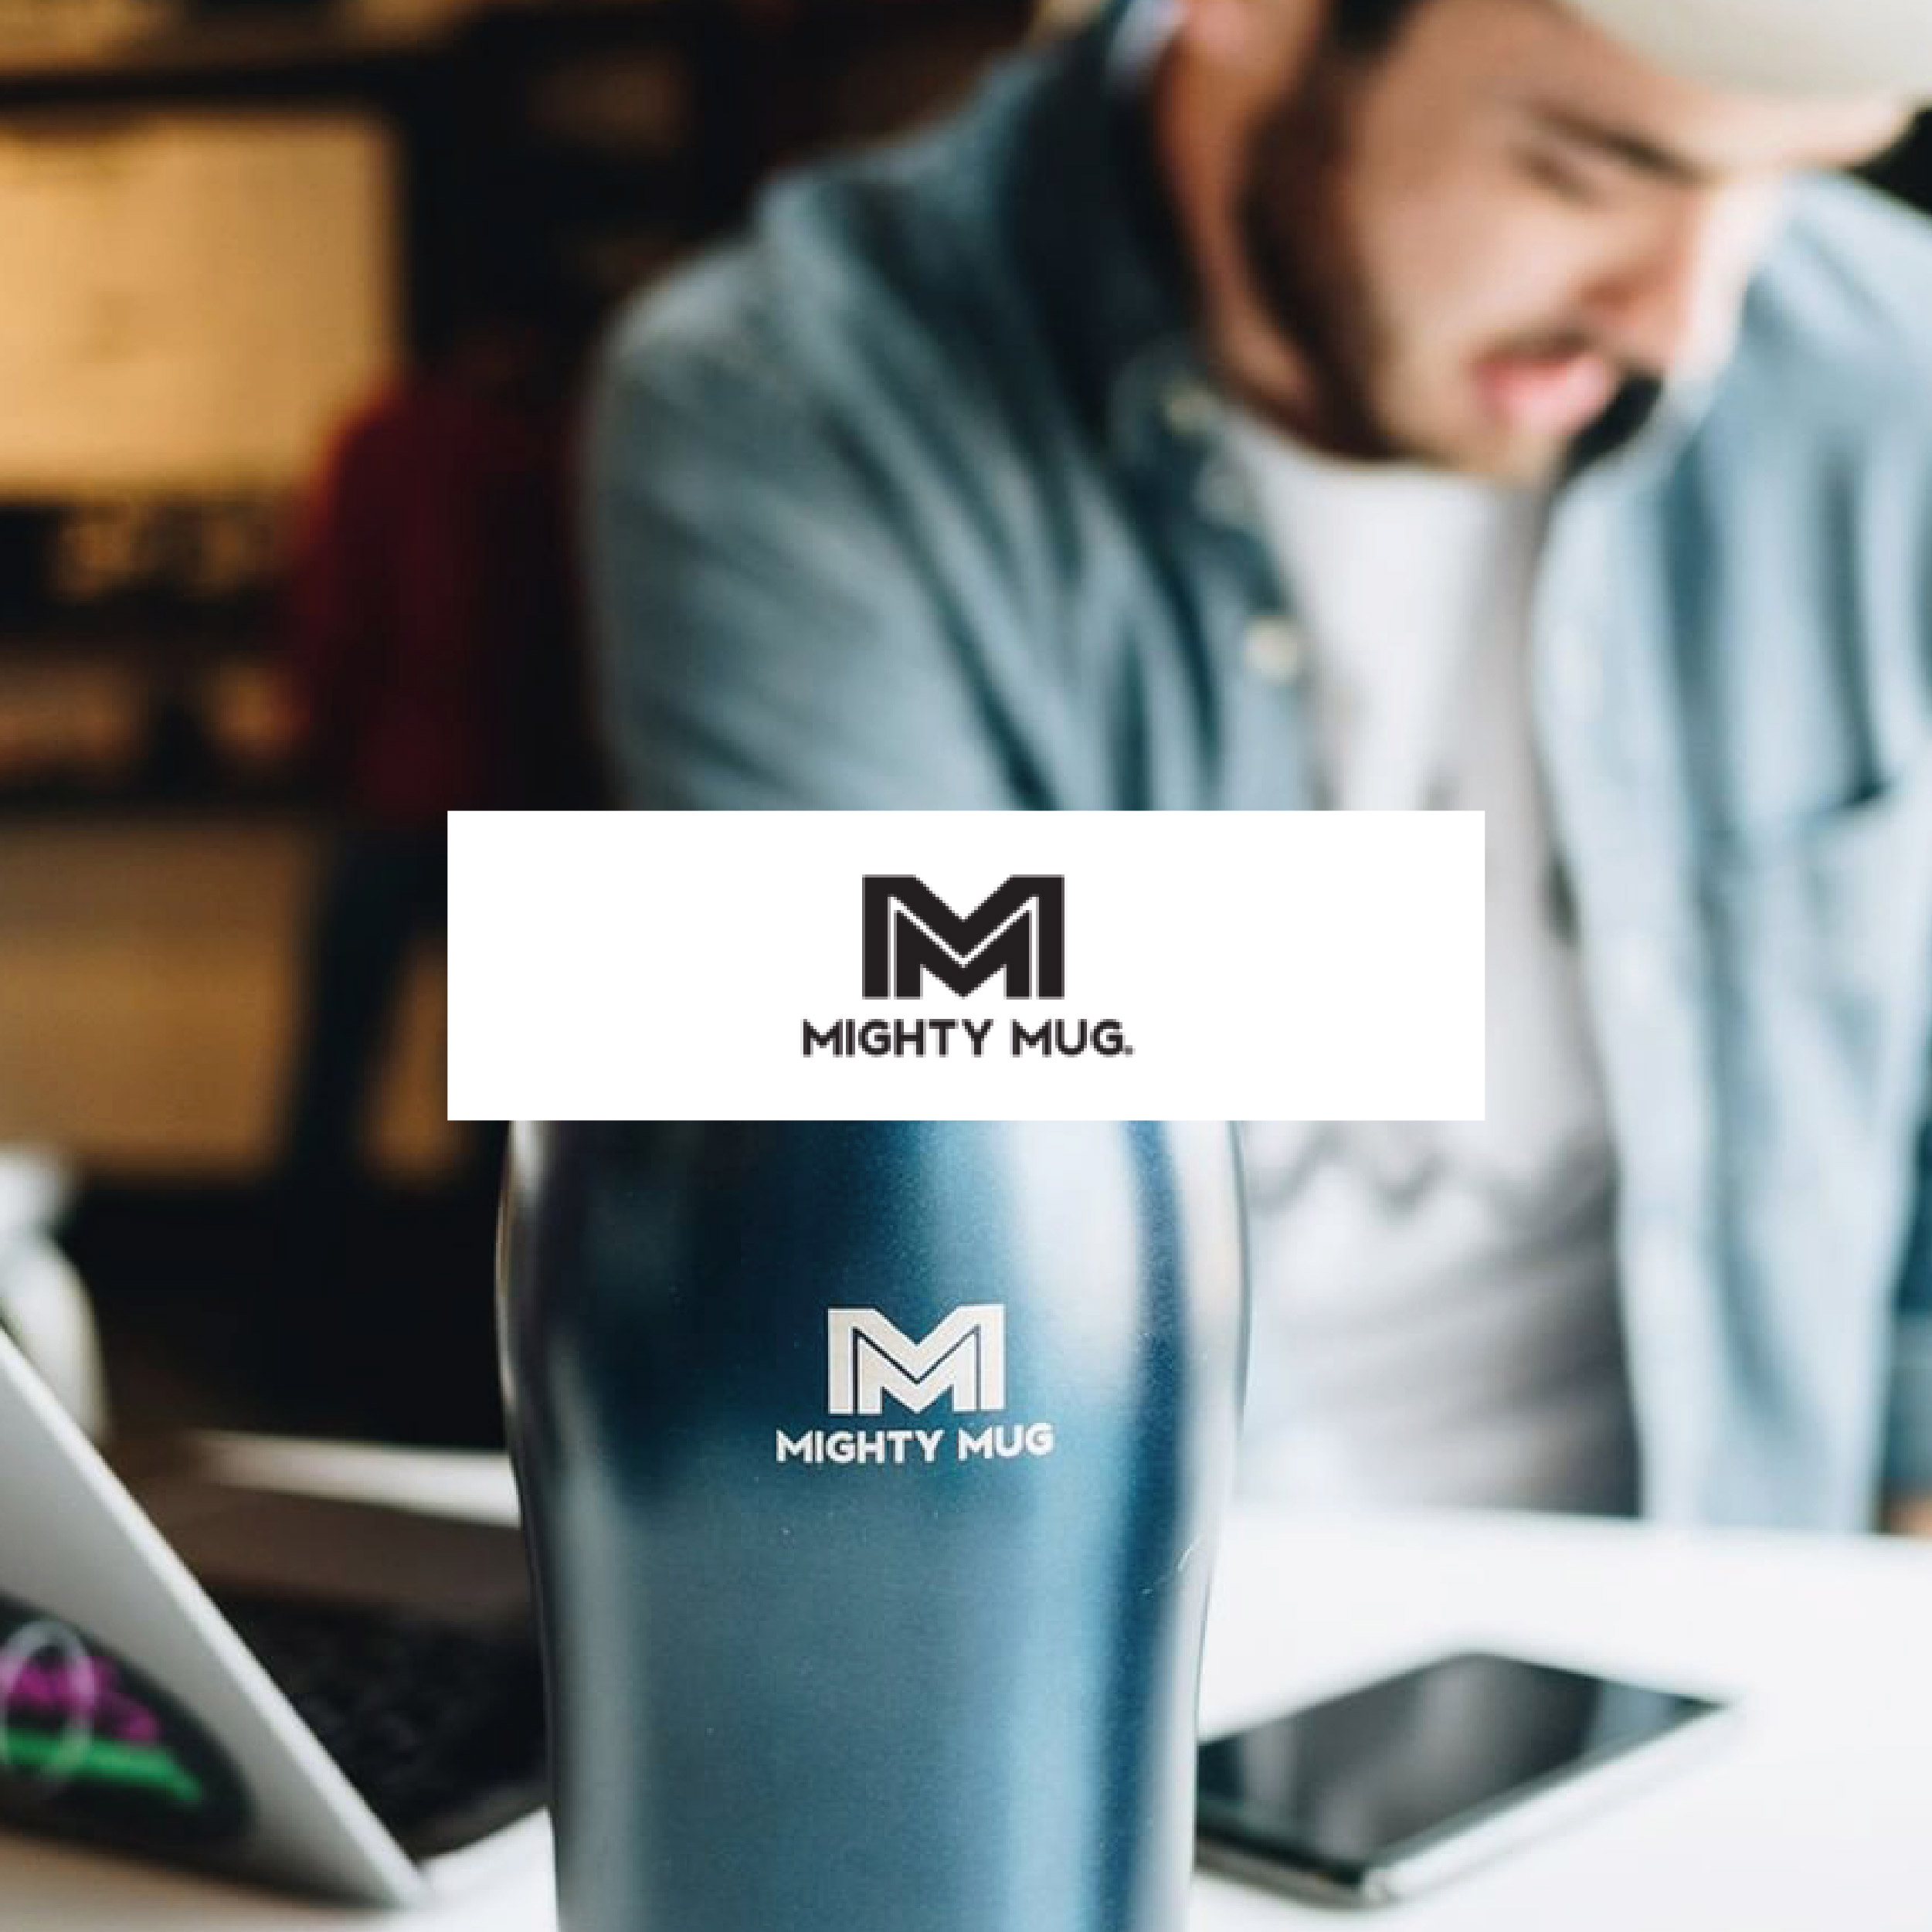 PromoBrand_Mighty_Mug_Promotional_Merchandise_Brands_Bounce_Creative_Designs